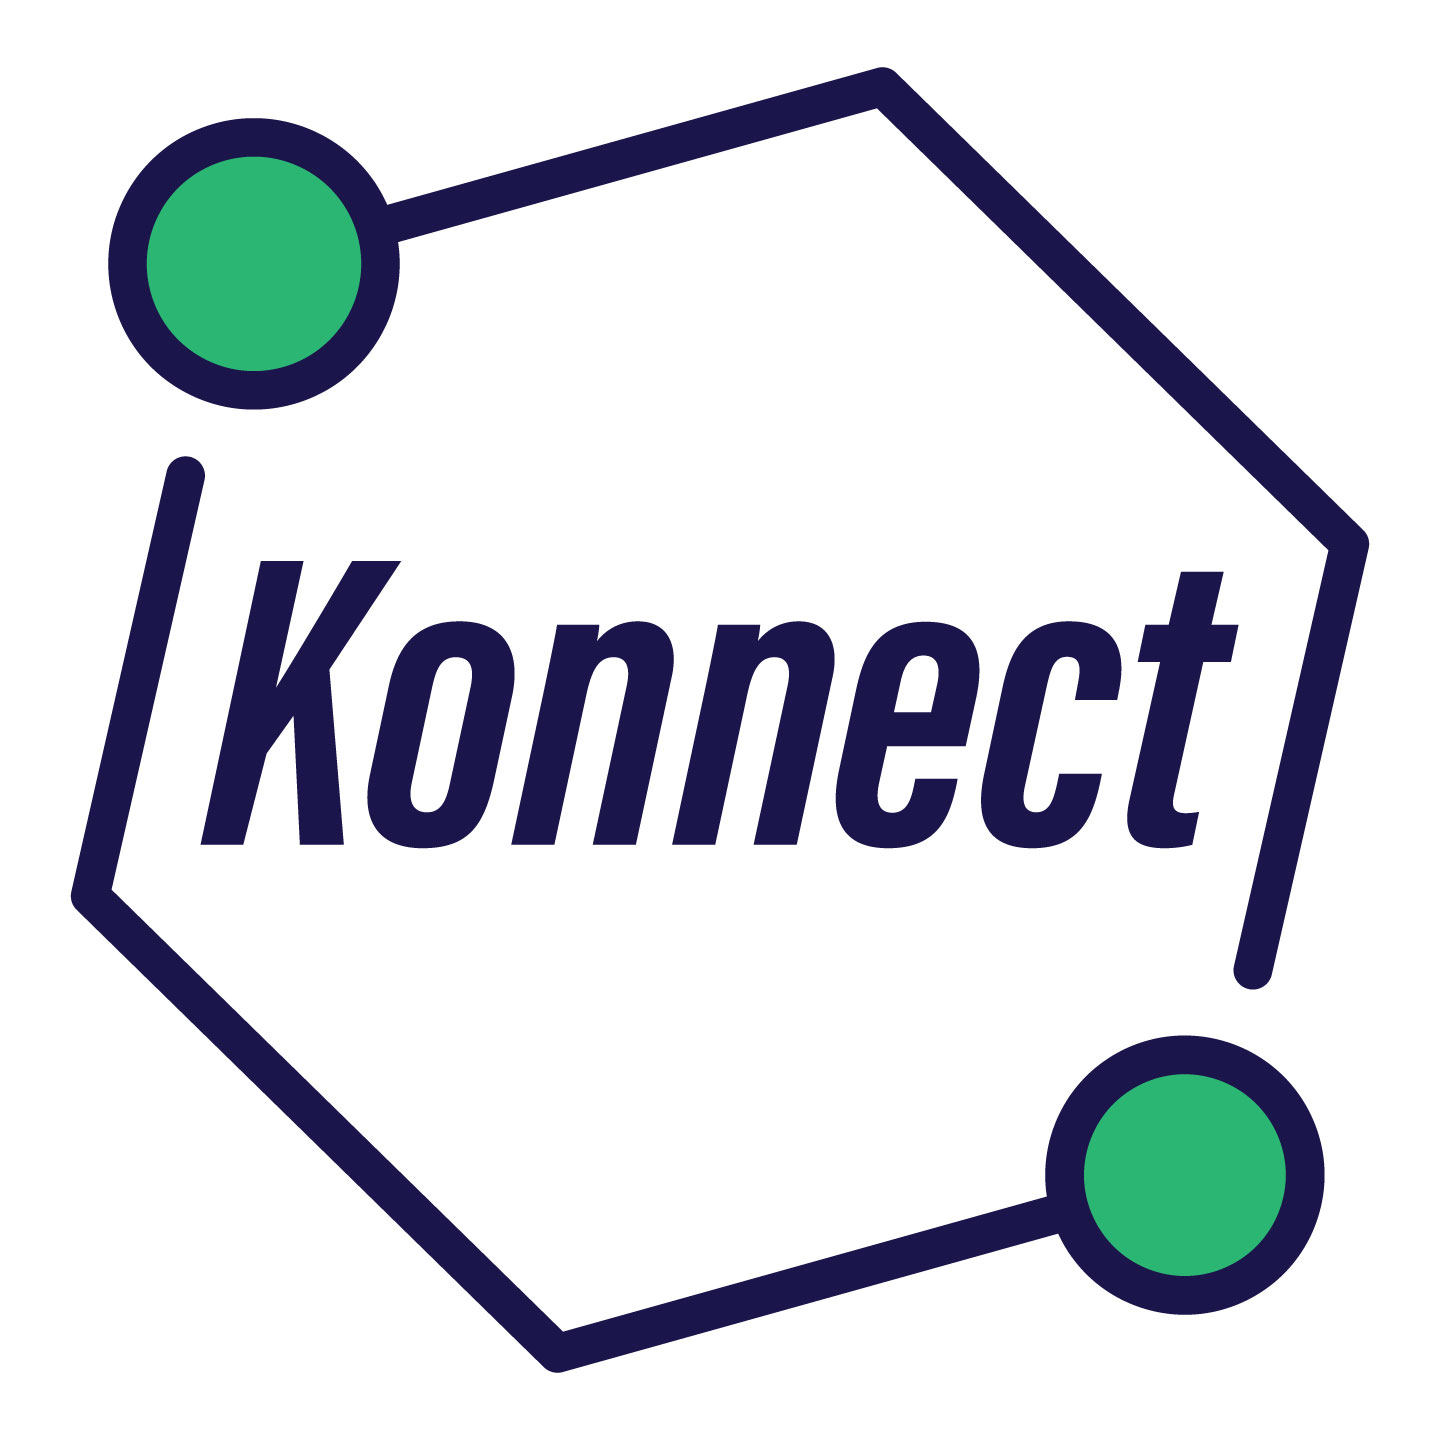 Konnect HQ (JPG)